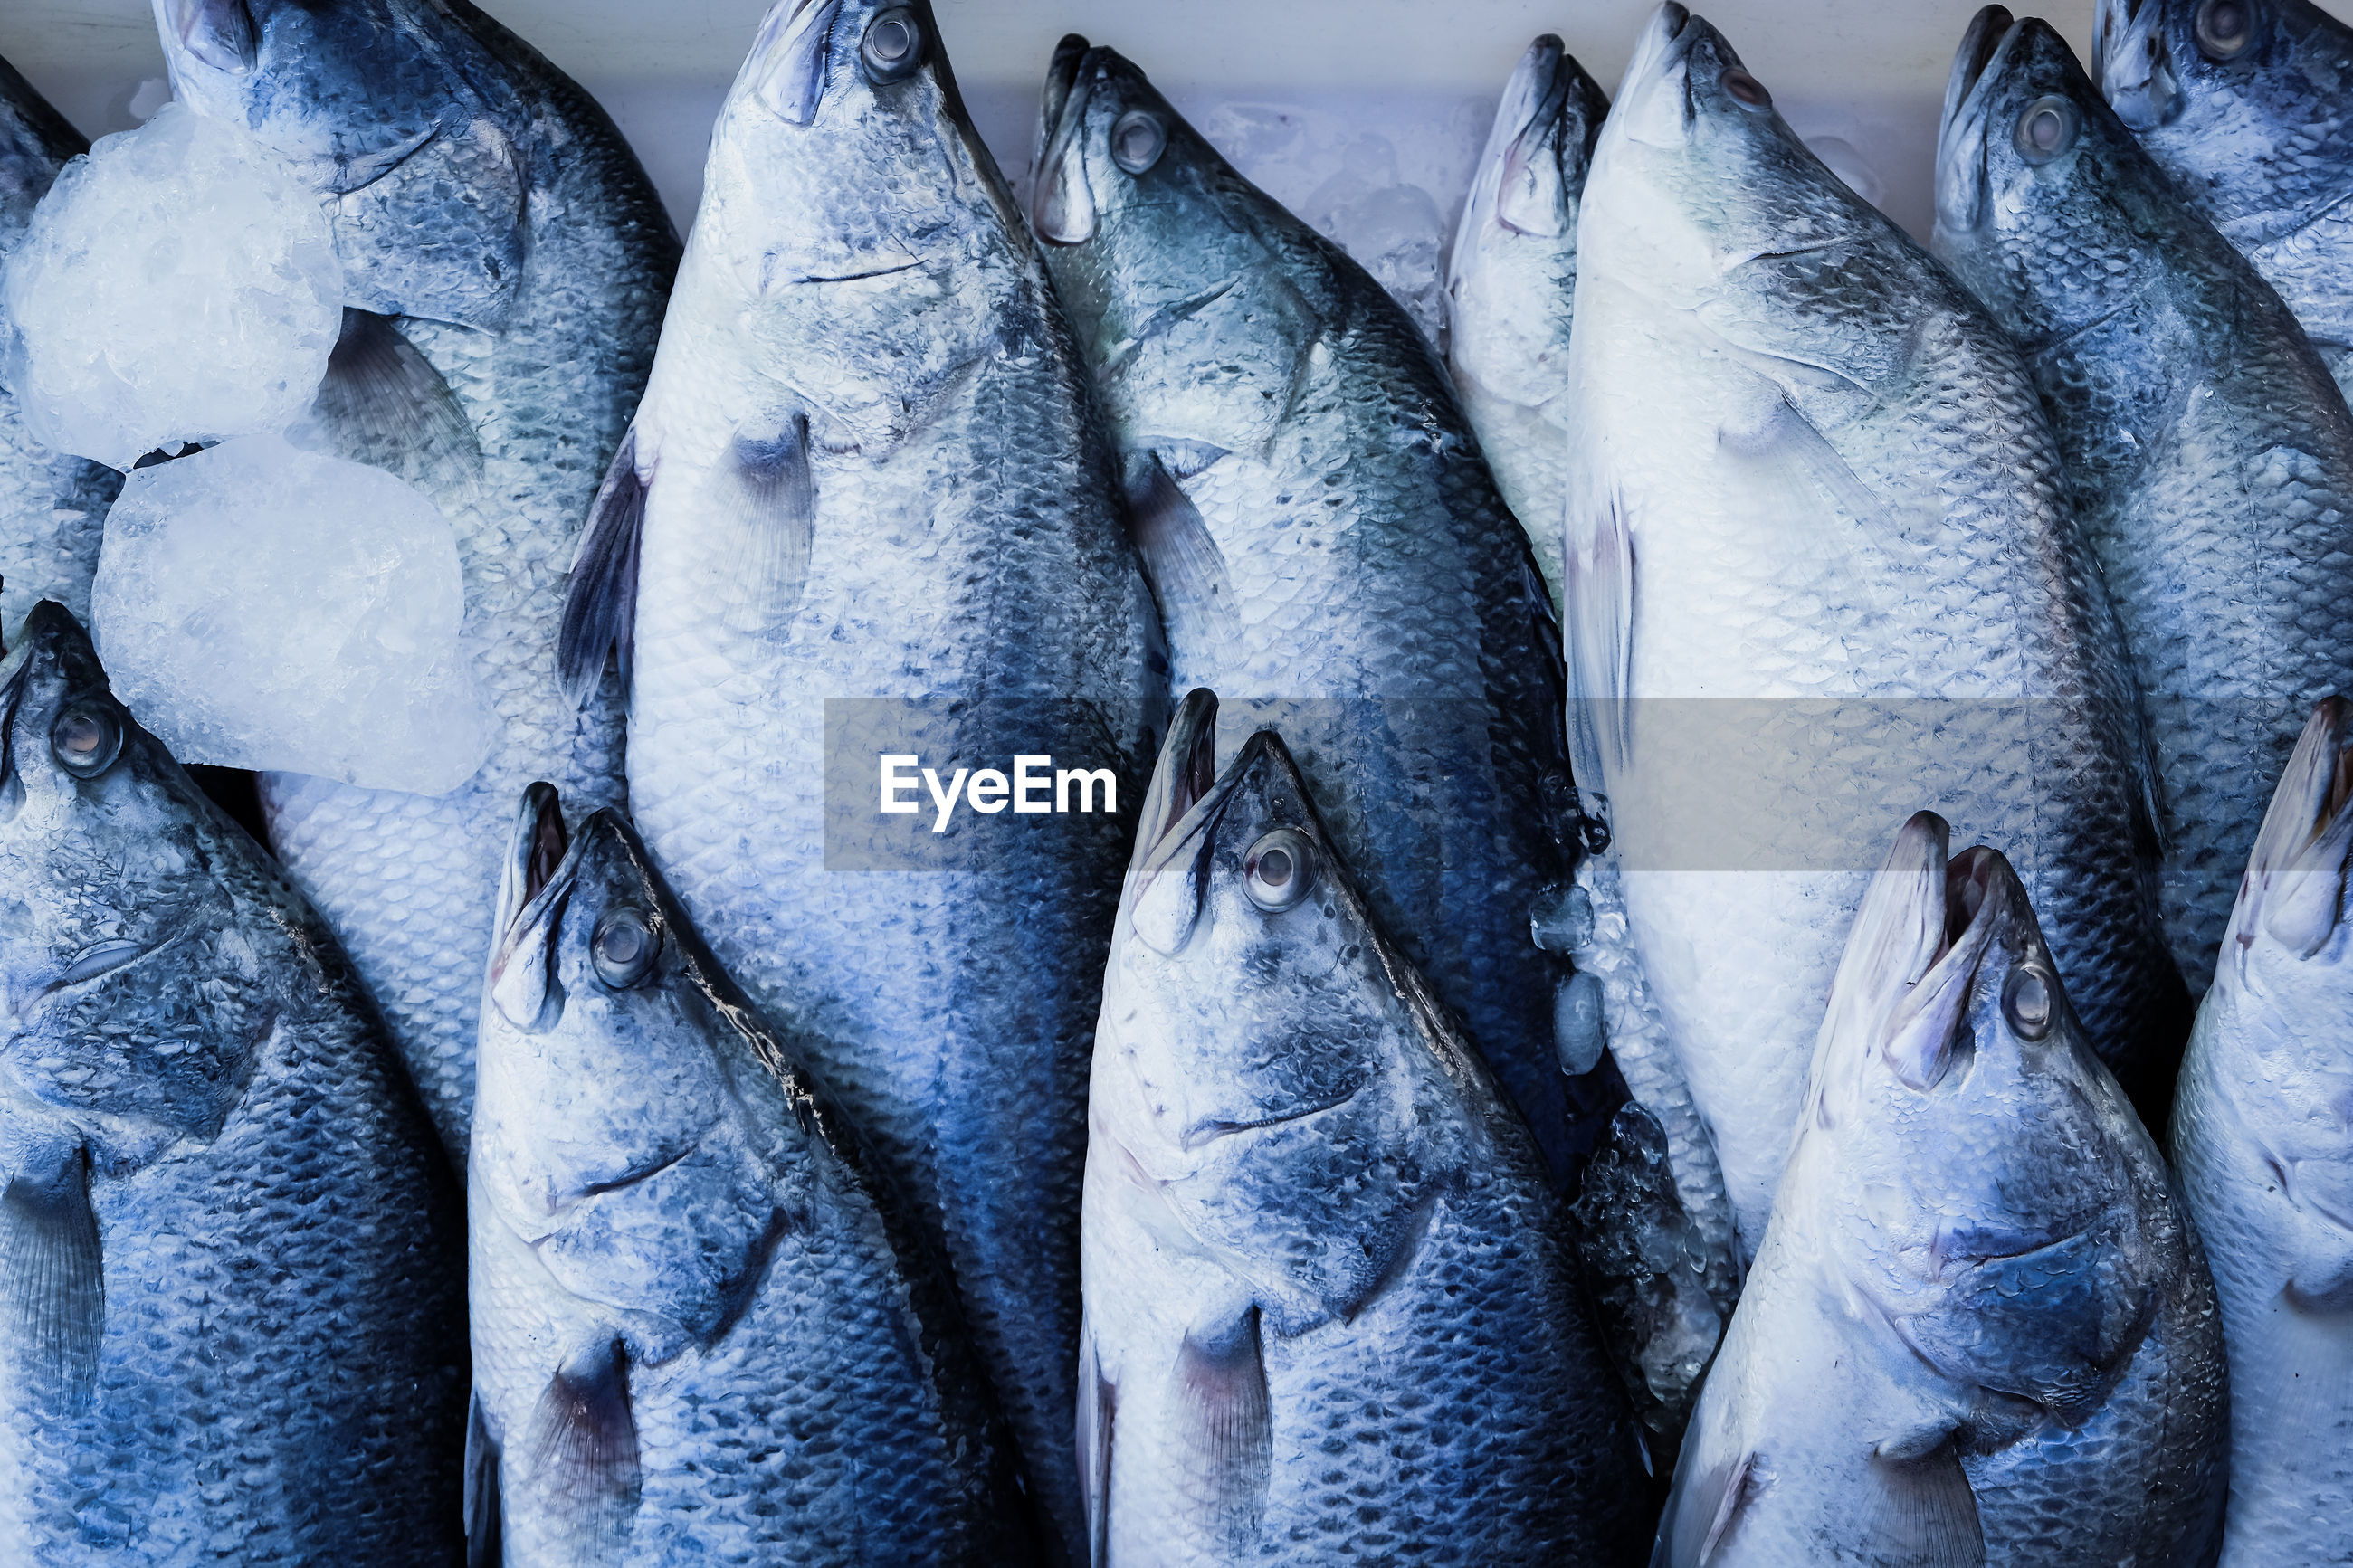 FISH FOR SALE IN MARKET